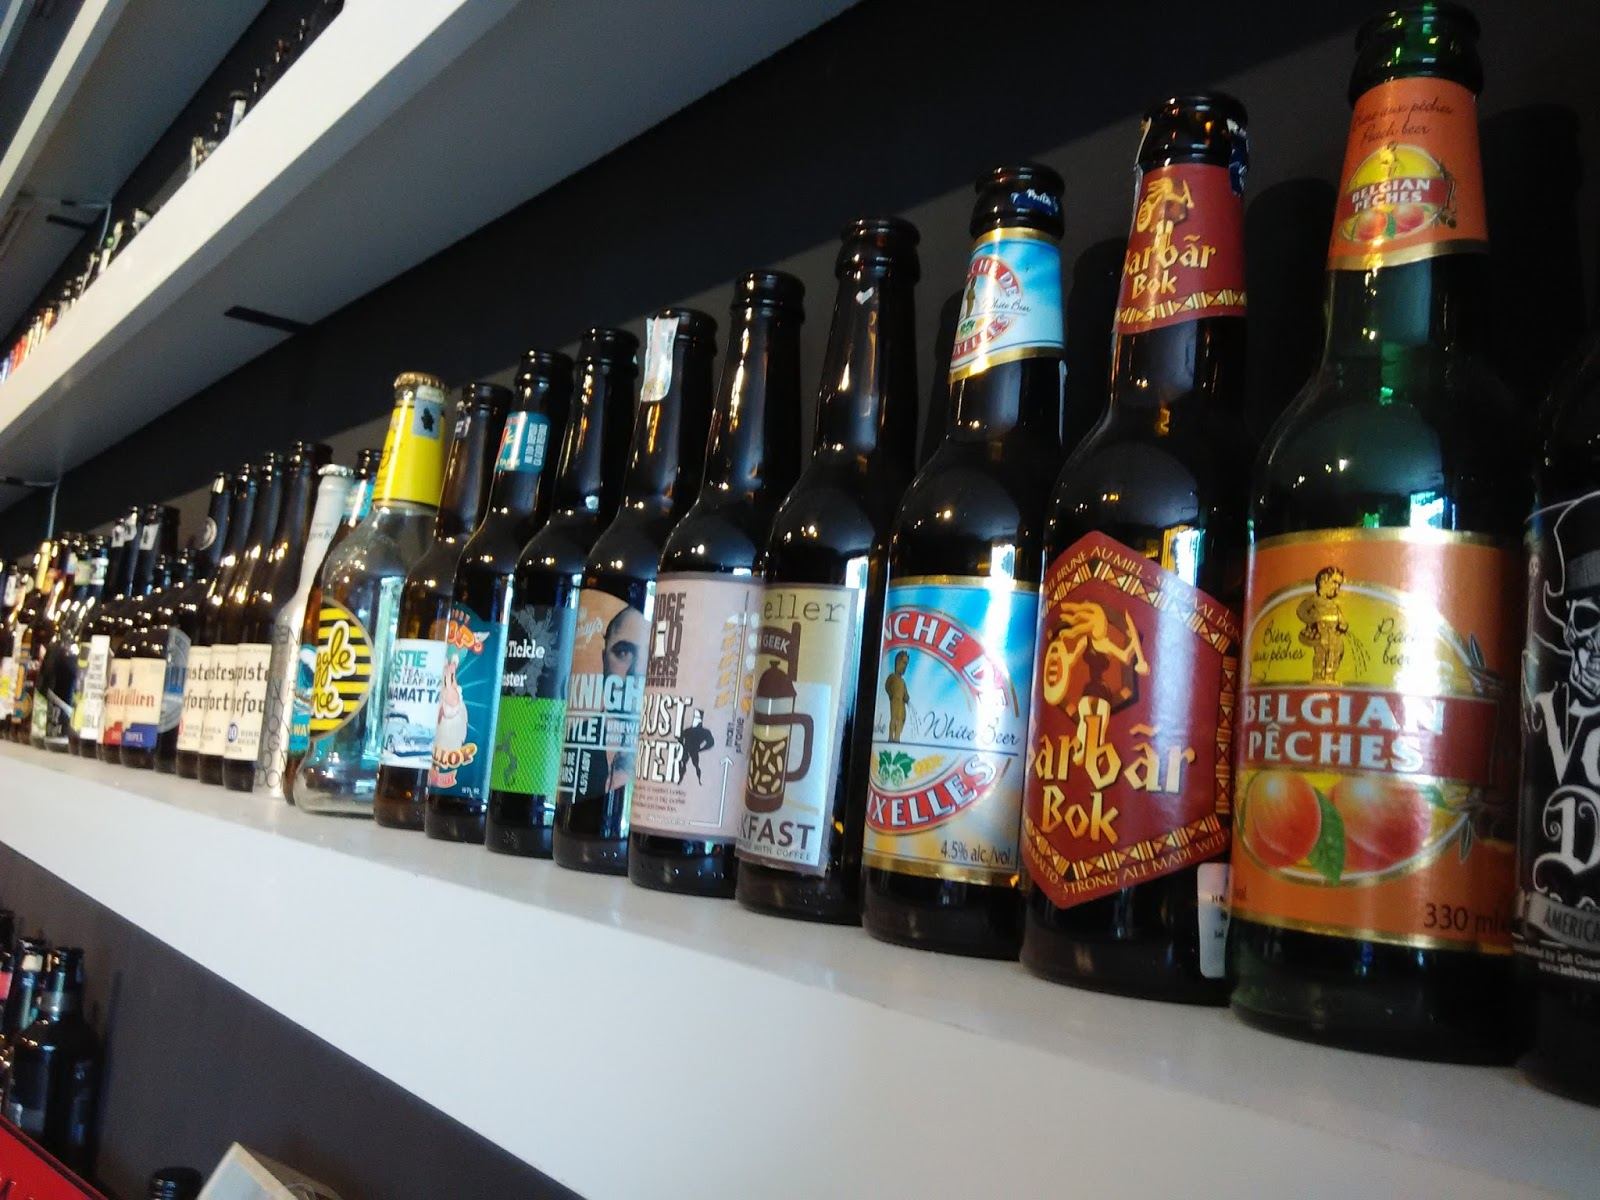 You Can Drink More Than 100 Kinds Of Craft Beers Sourced From The Finest Independent Micro Breweries All Over World In Beer By